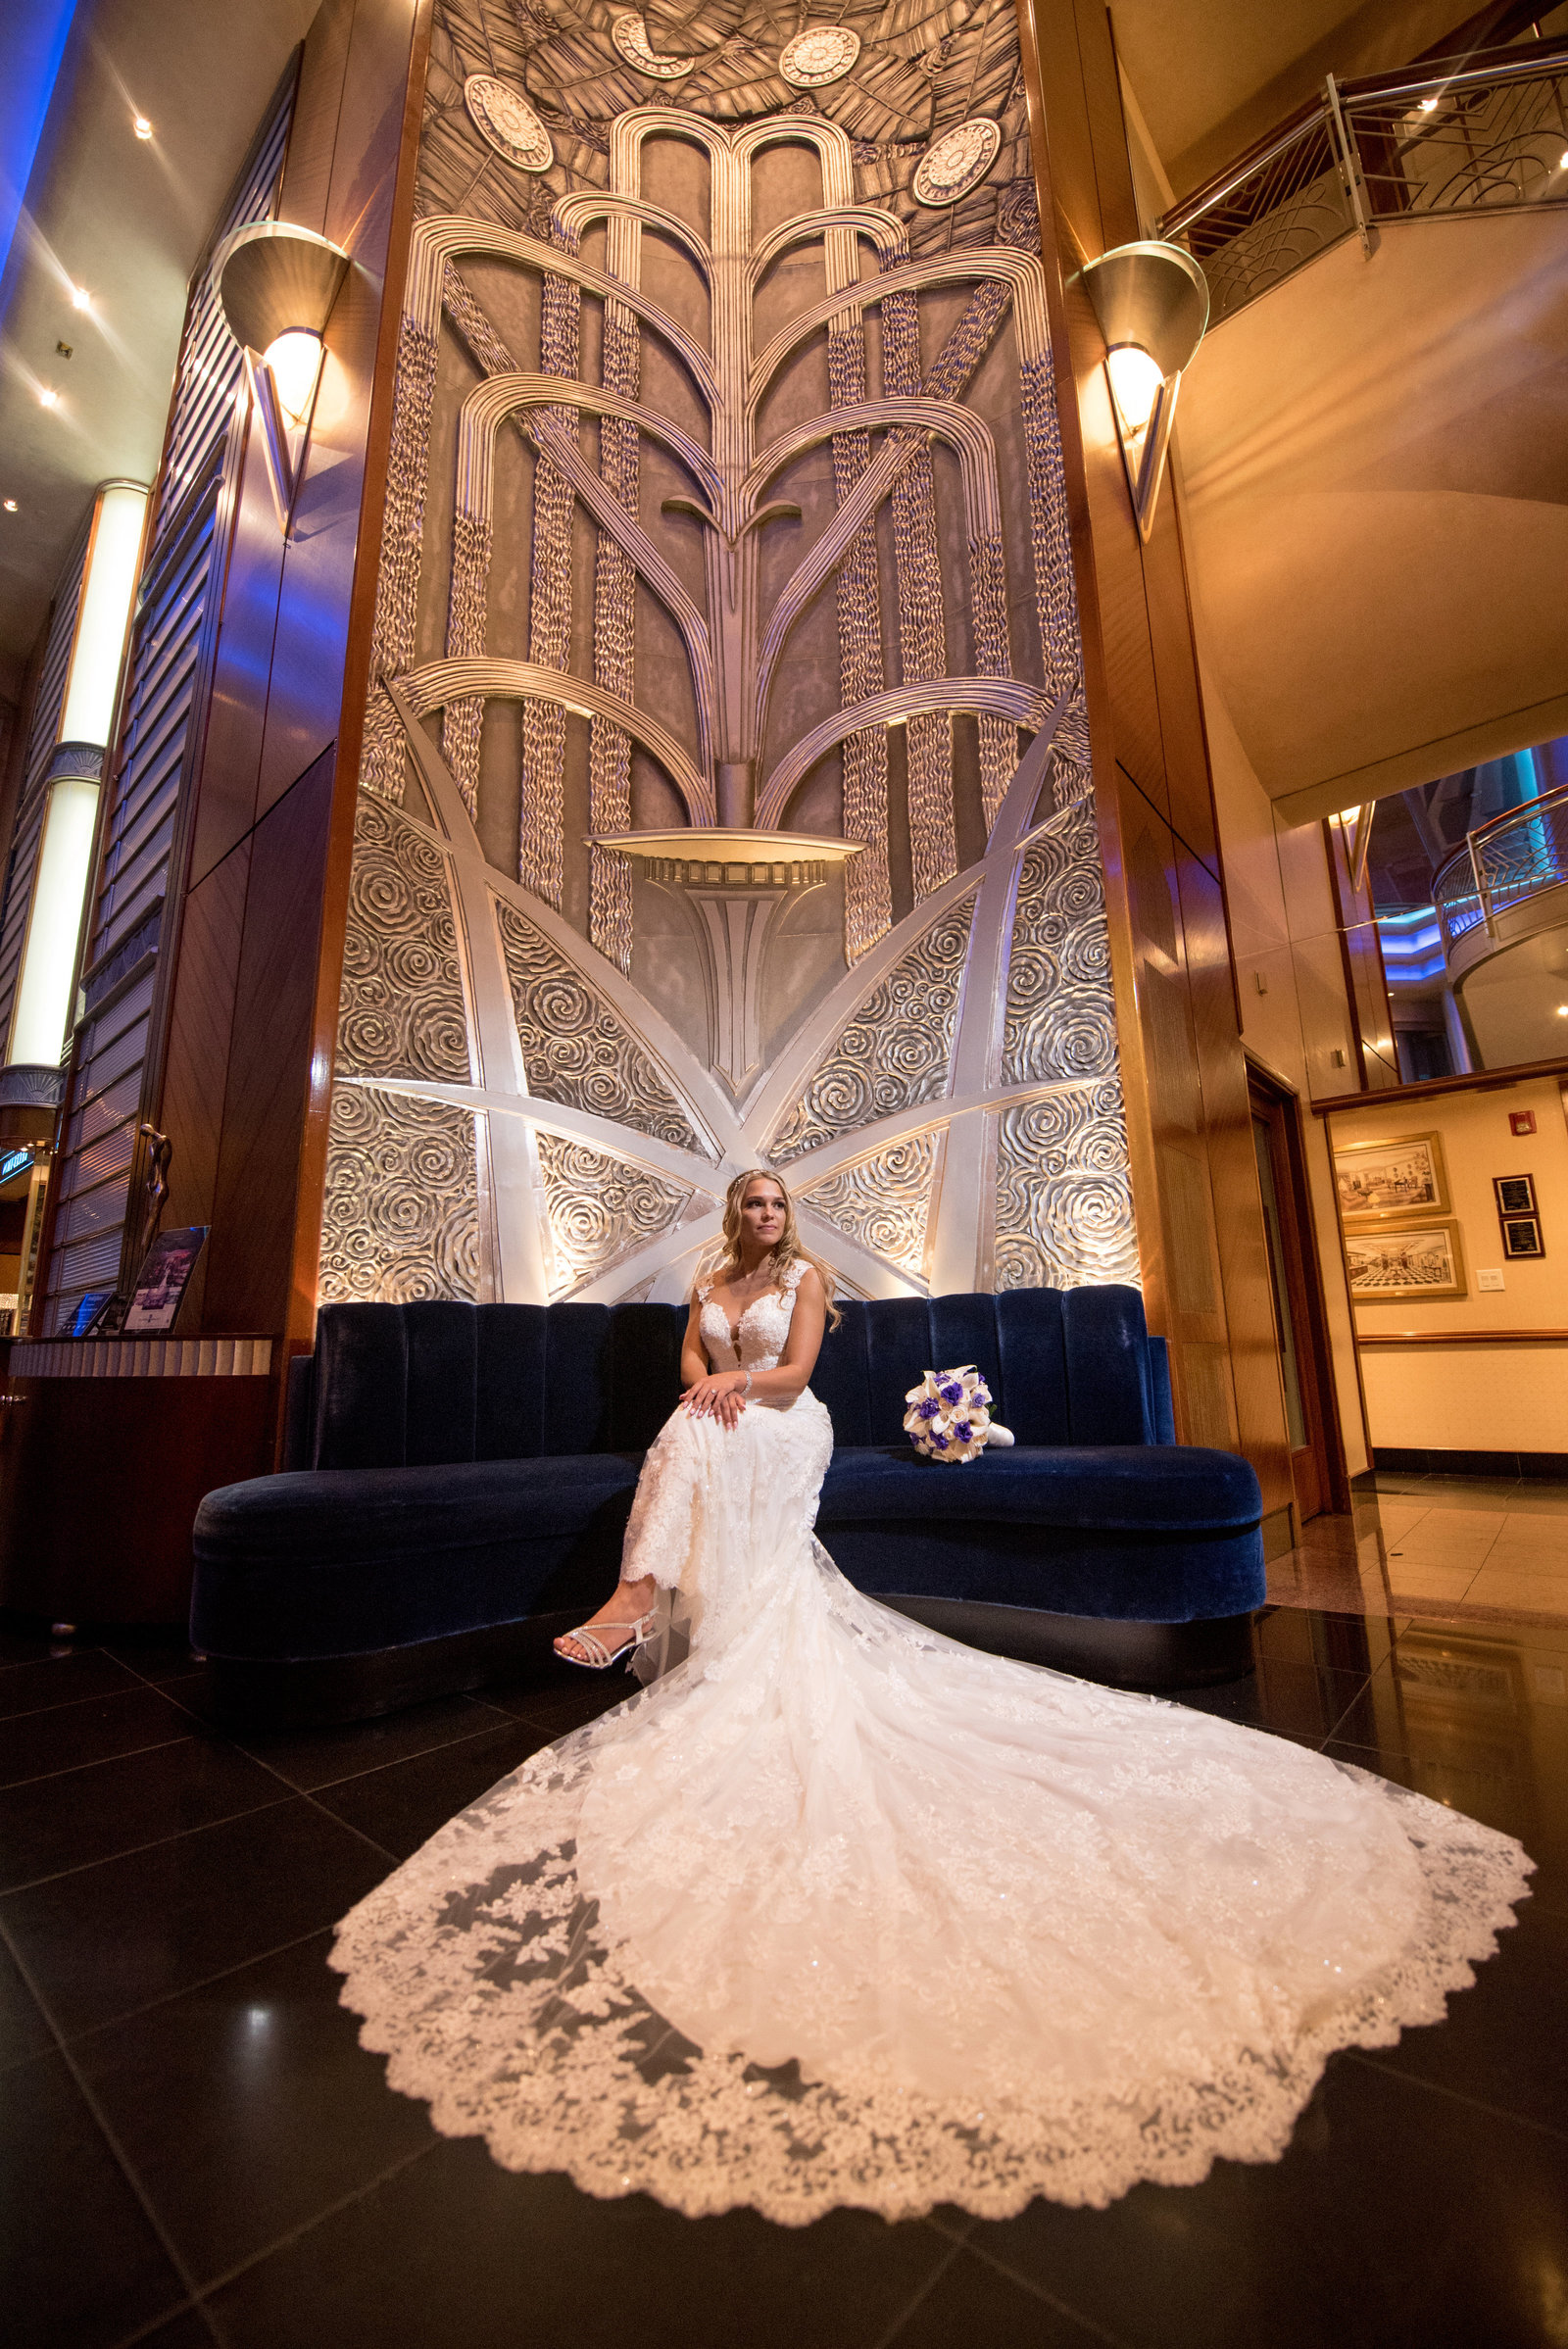 Top wedding photos from Chateau Briand